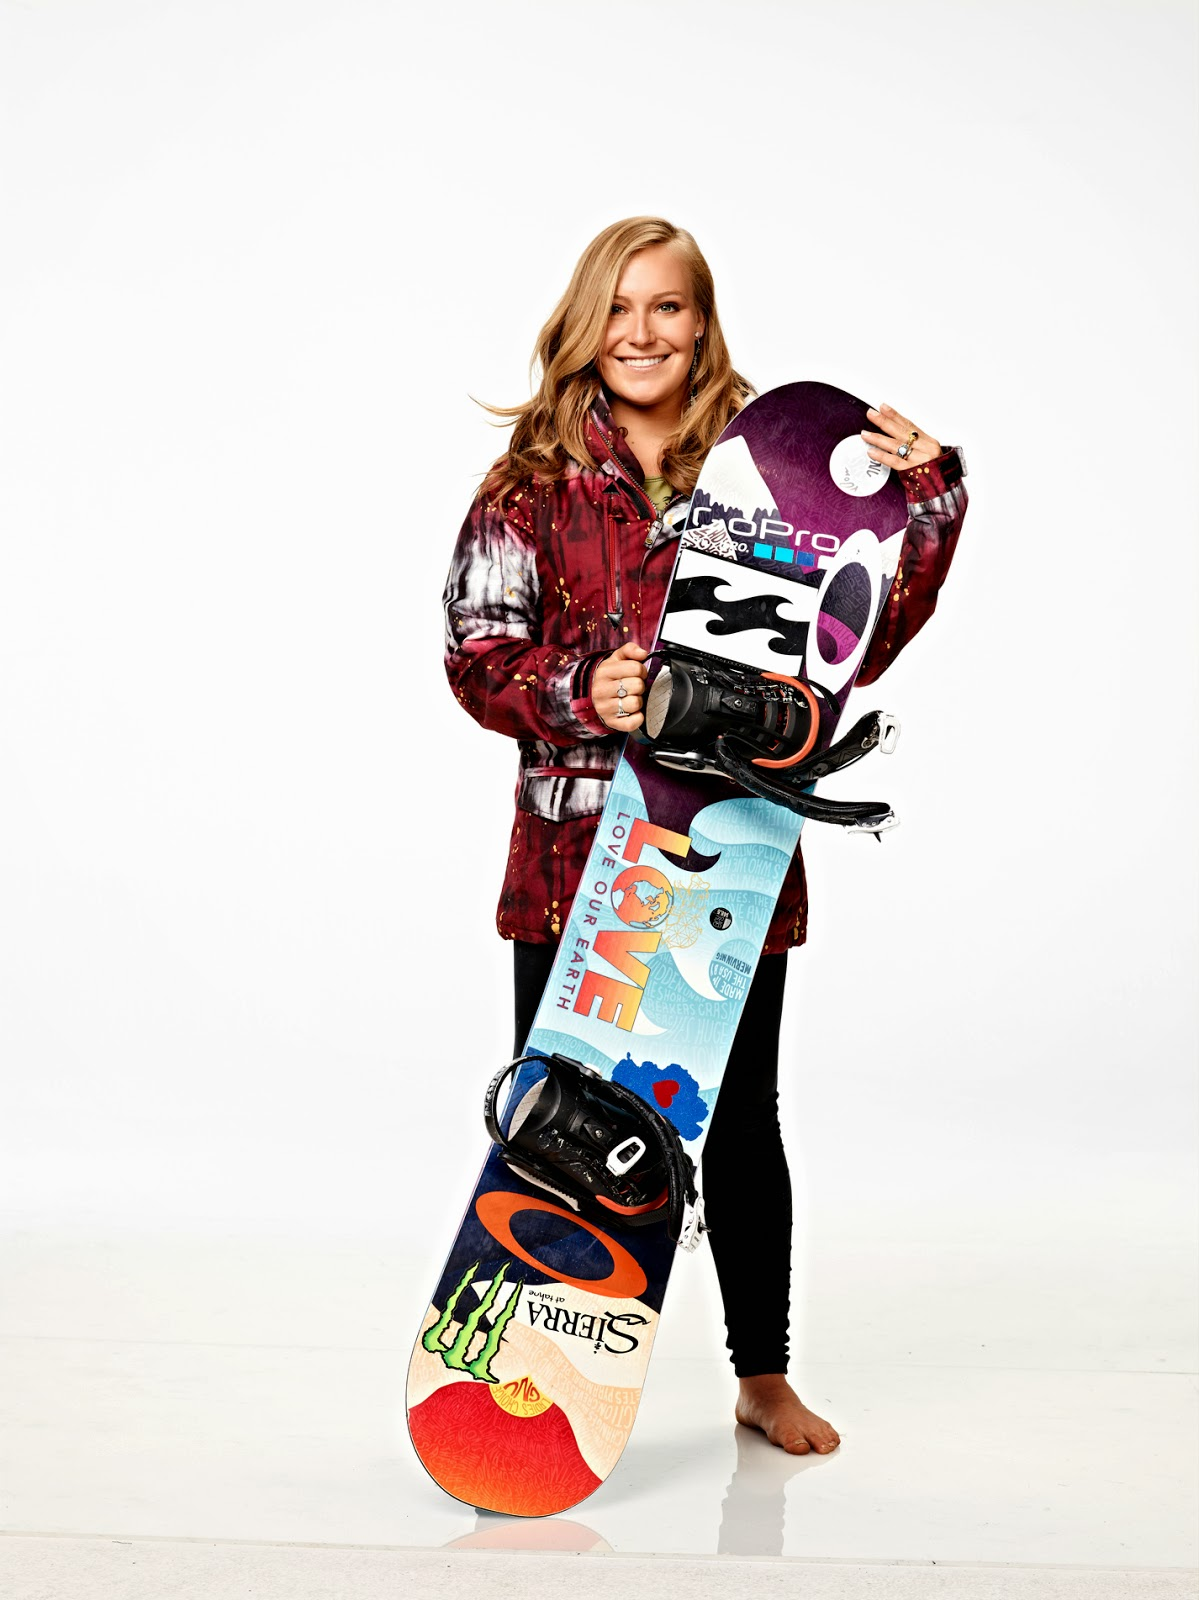 Women's snowboard slopestyle gold medalist, Jamie Anderson